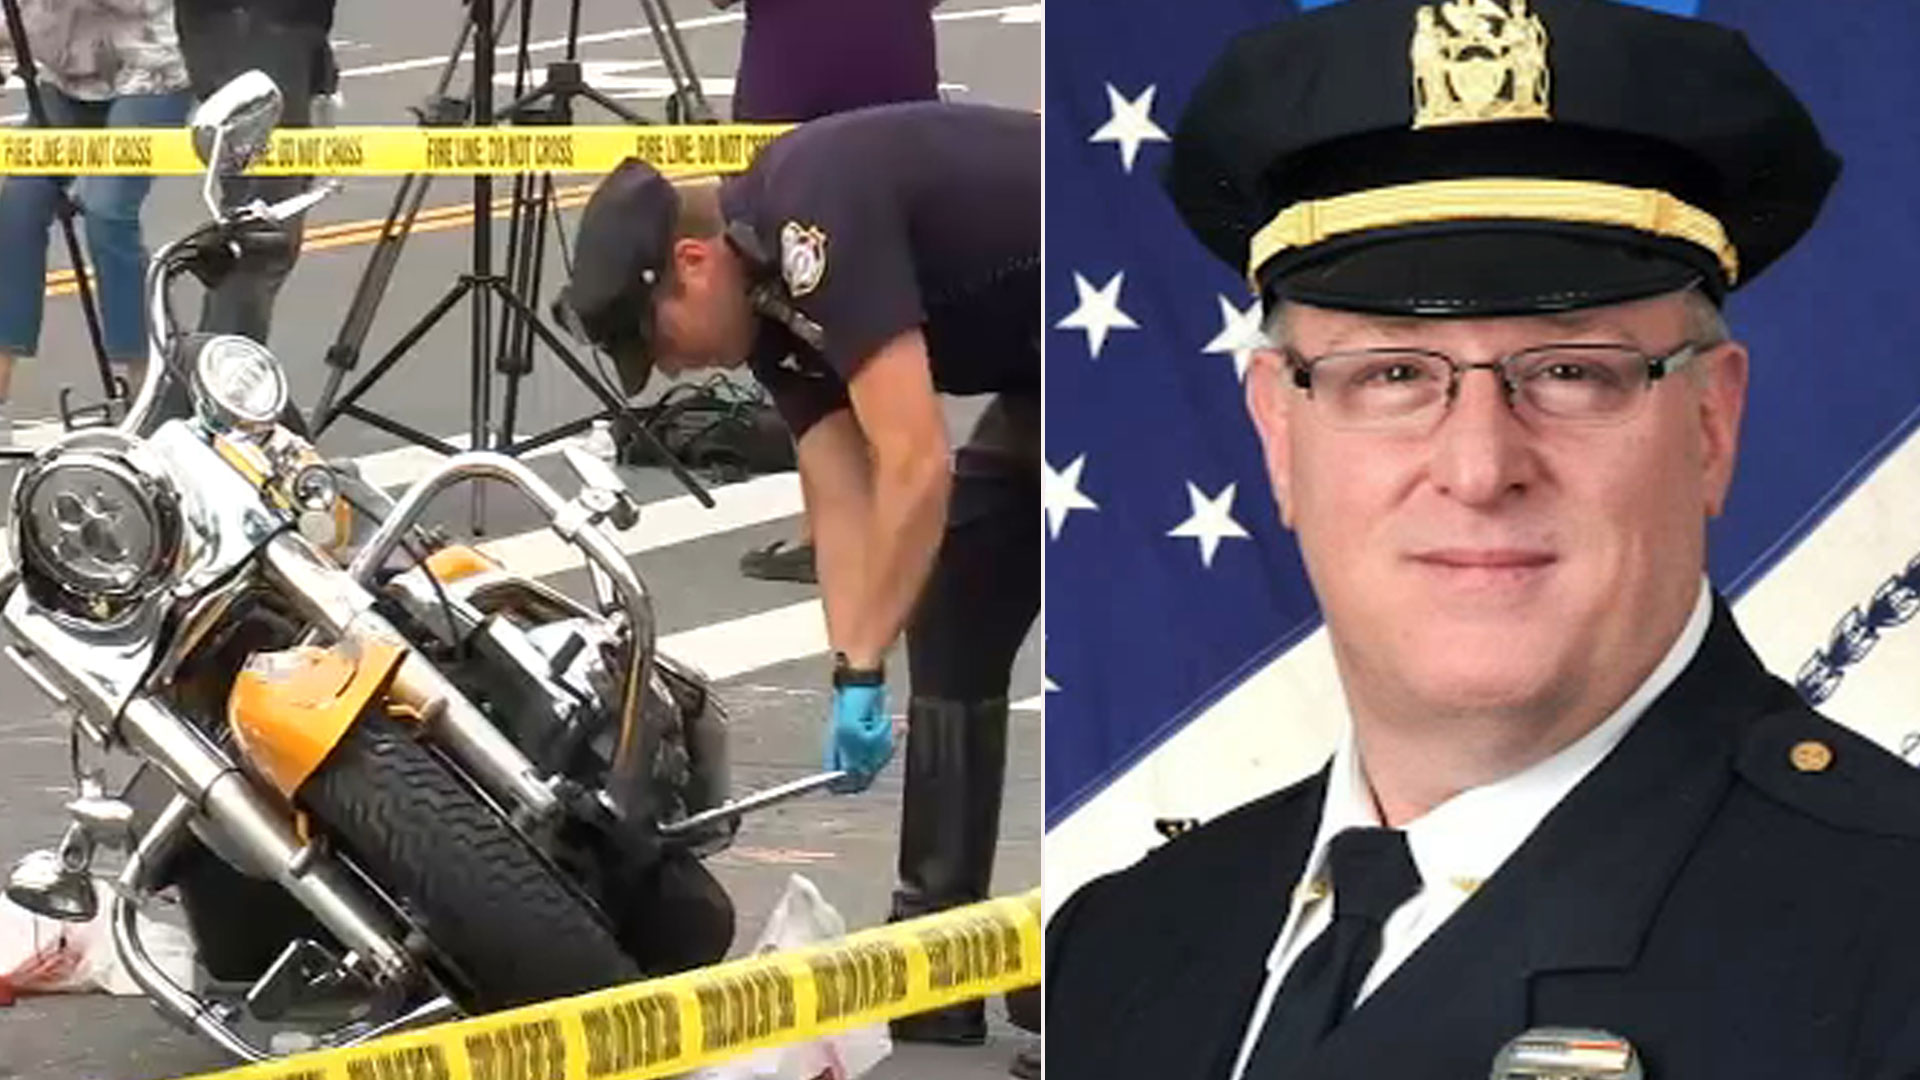 Off-duty NYPD officer dies after motorcycle crash in Pelham Bay